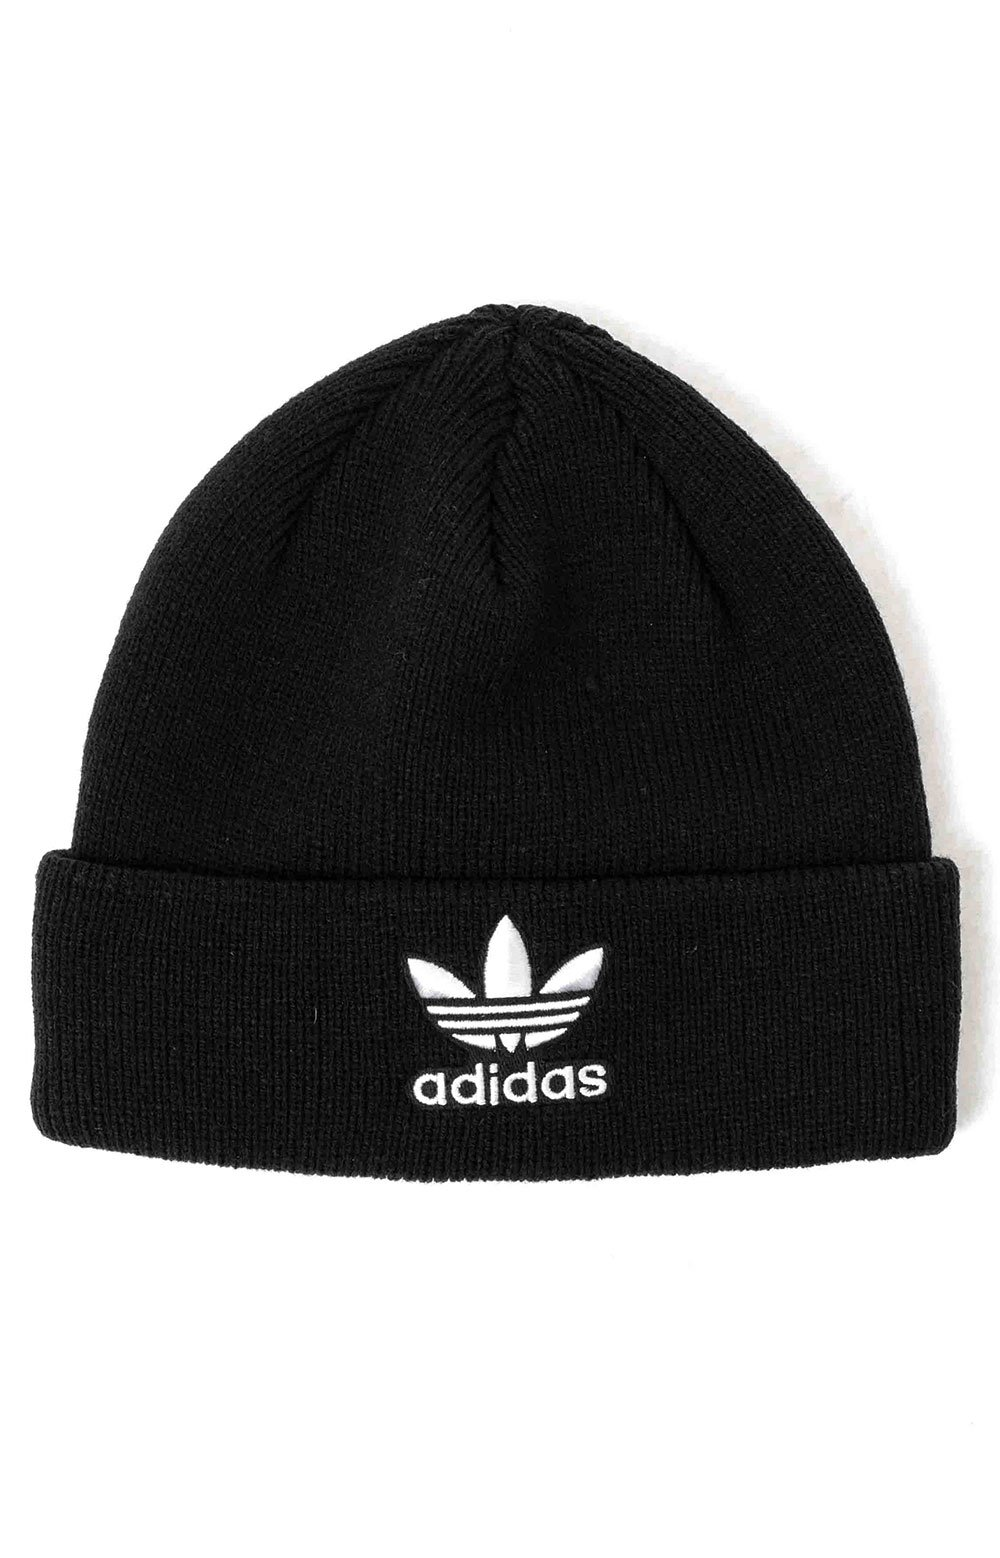 Originals Trefoil Beanie - Black/White